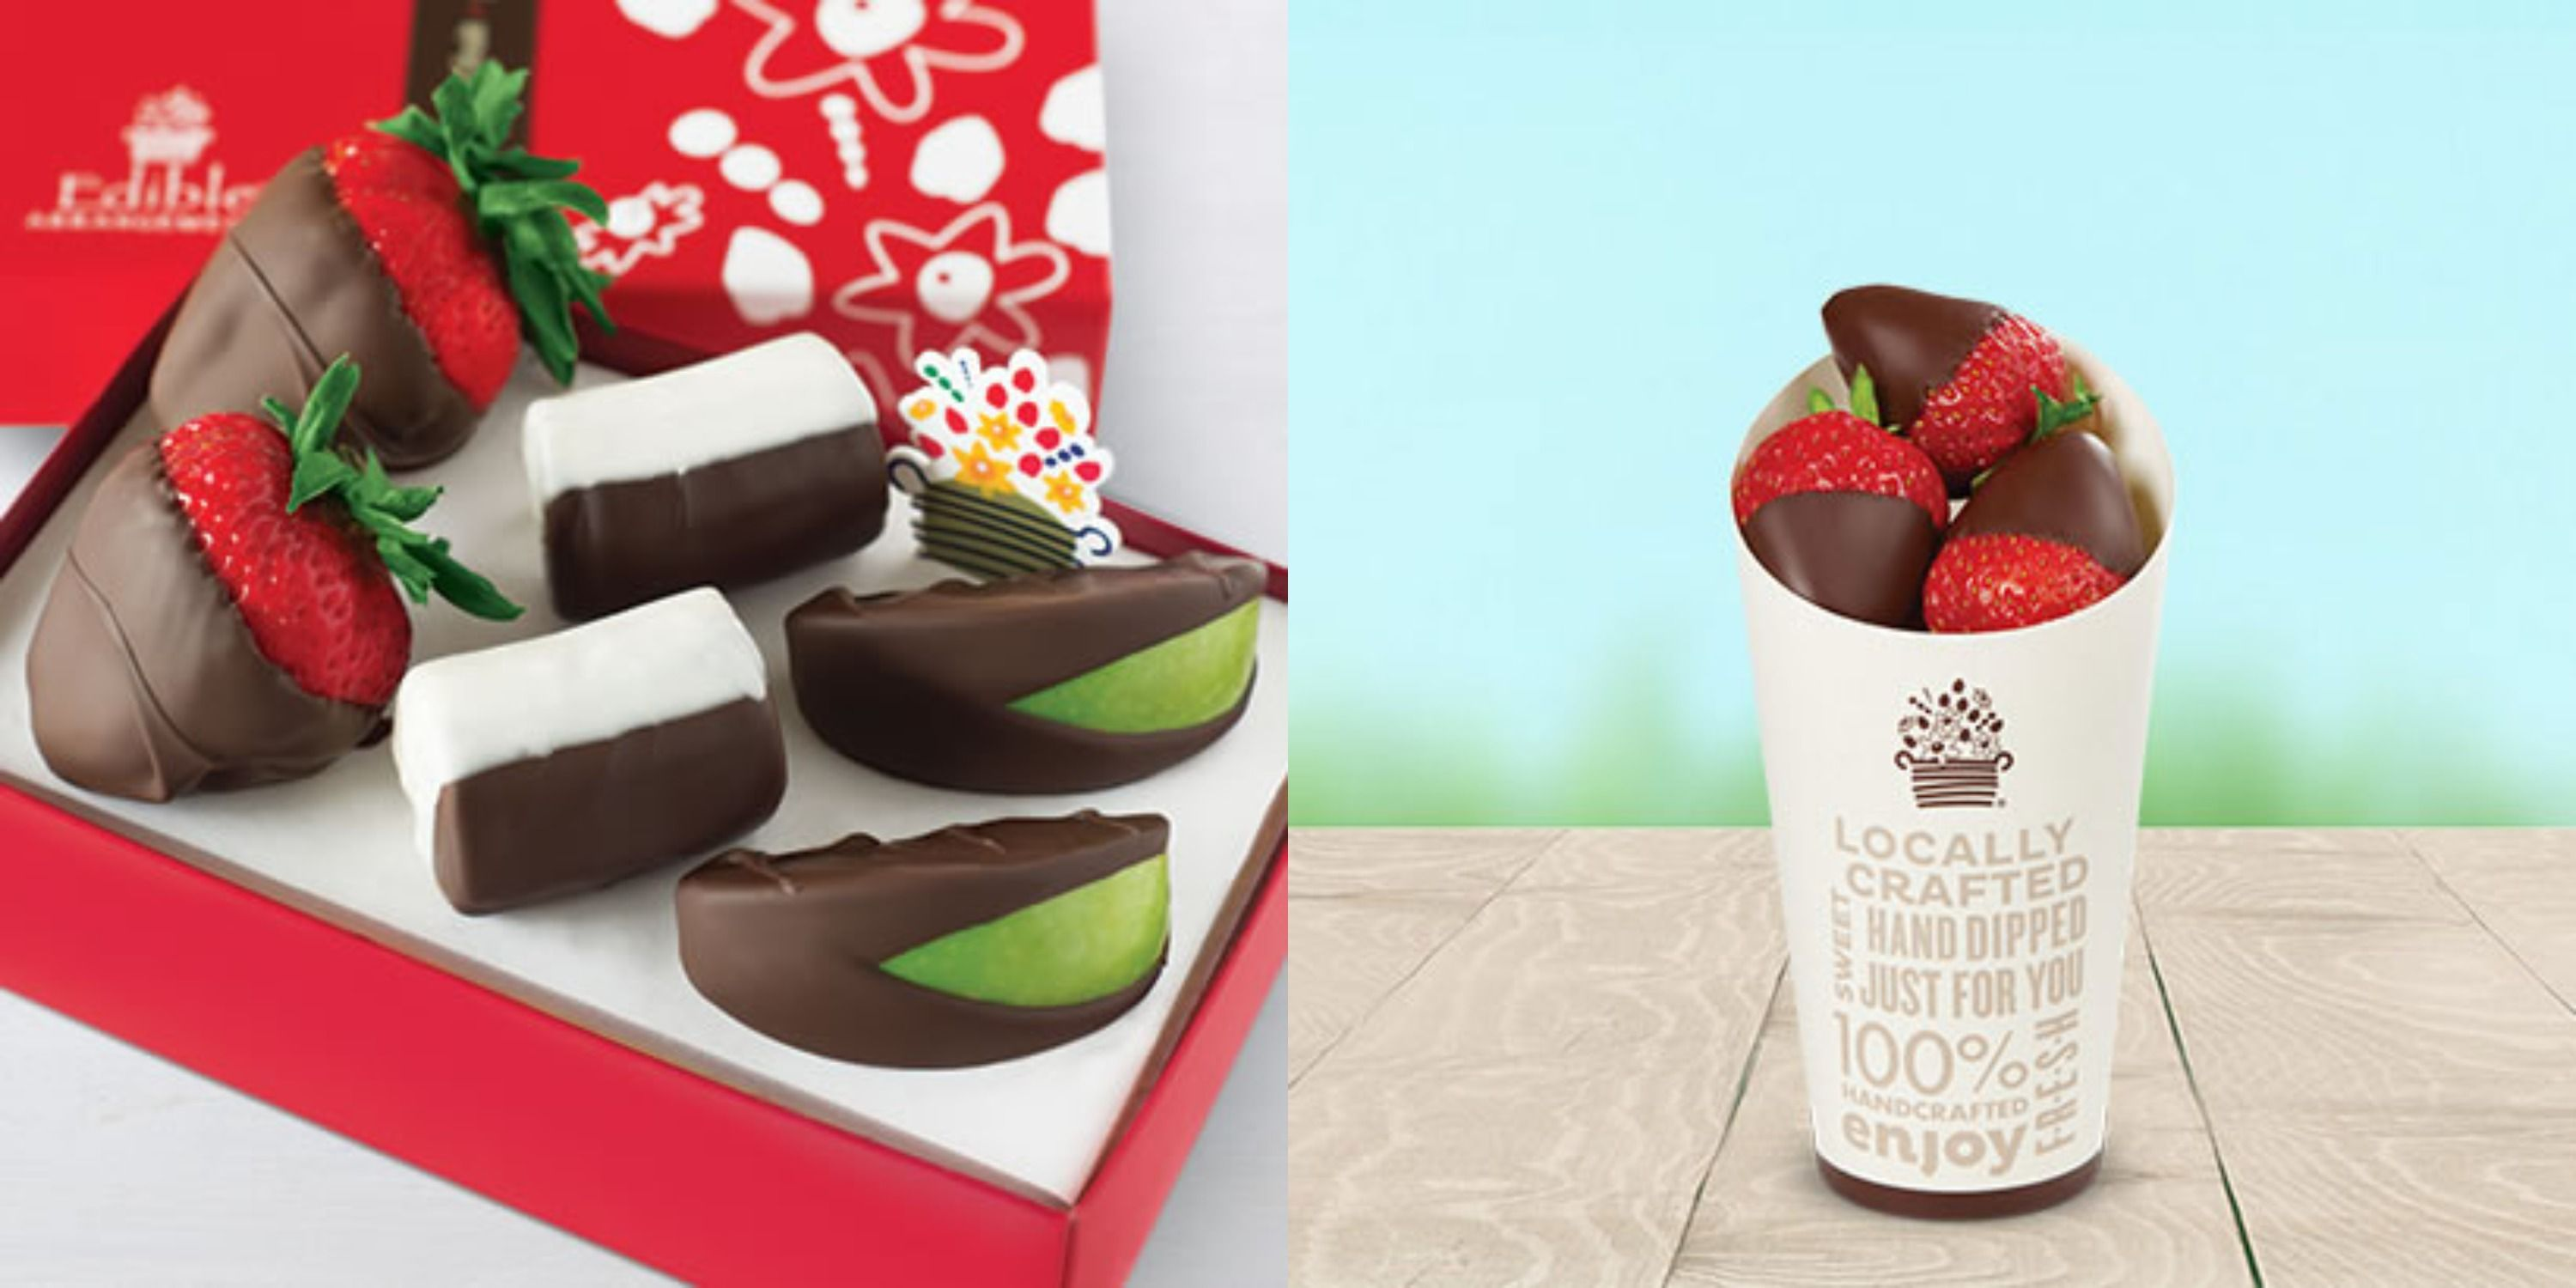 Edible Arrangements Is Now Making Chocolate-Covered Fruit Infused With CBD